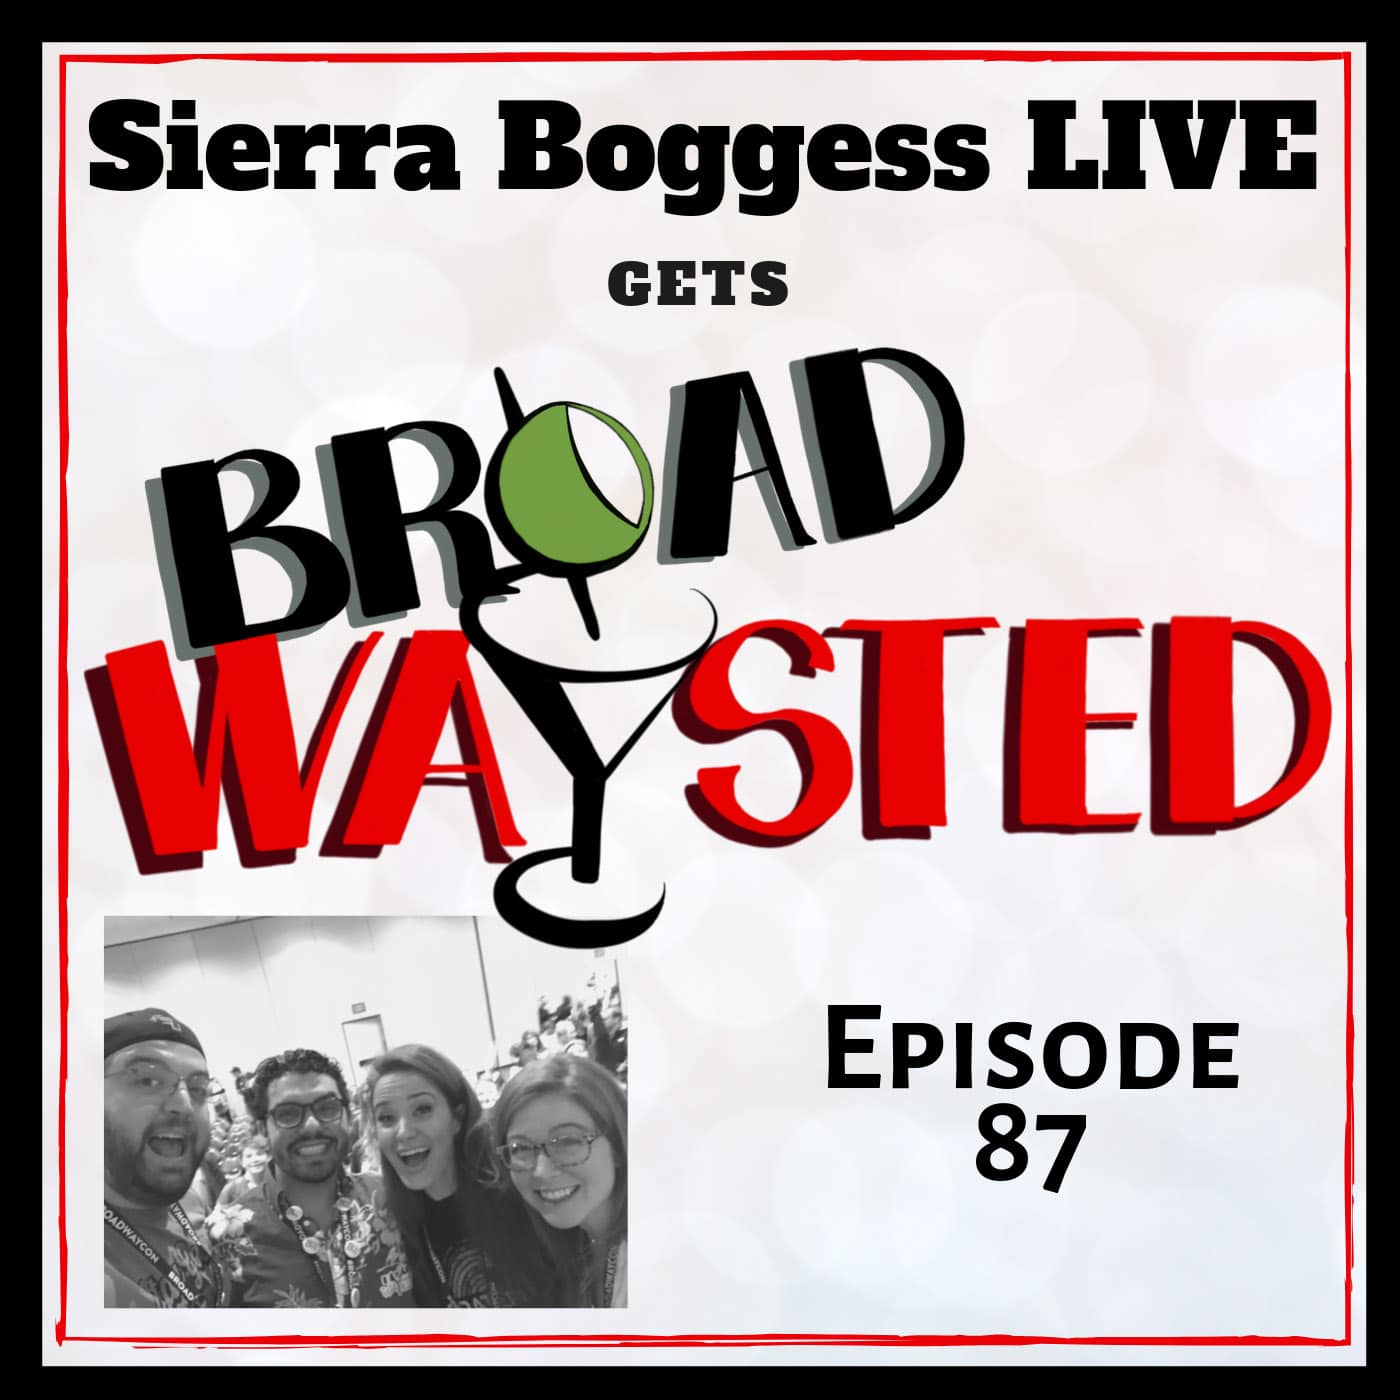 Broadwaysted Ep 87 Sierra Boggess